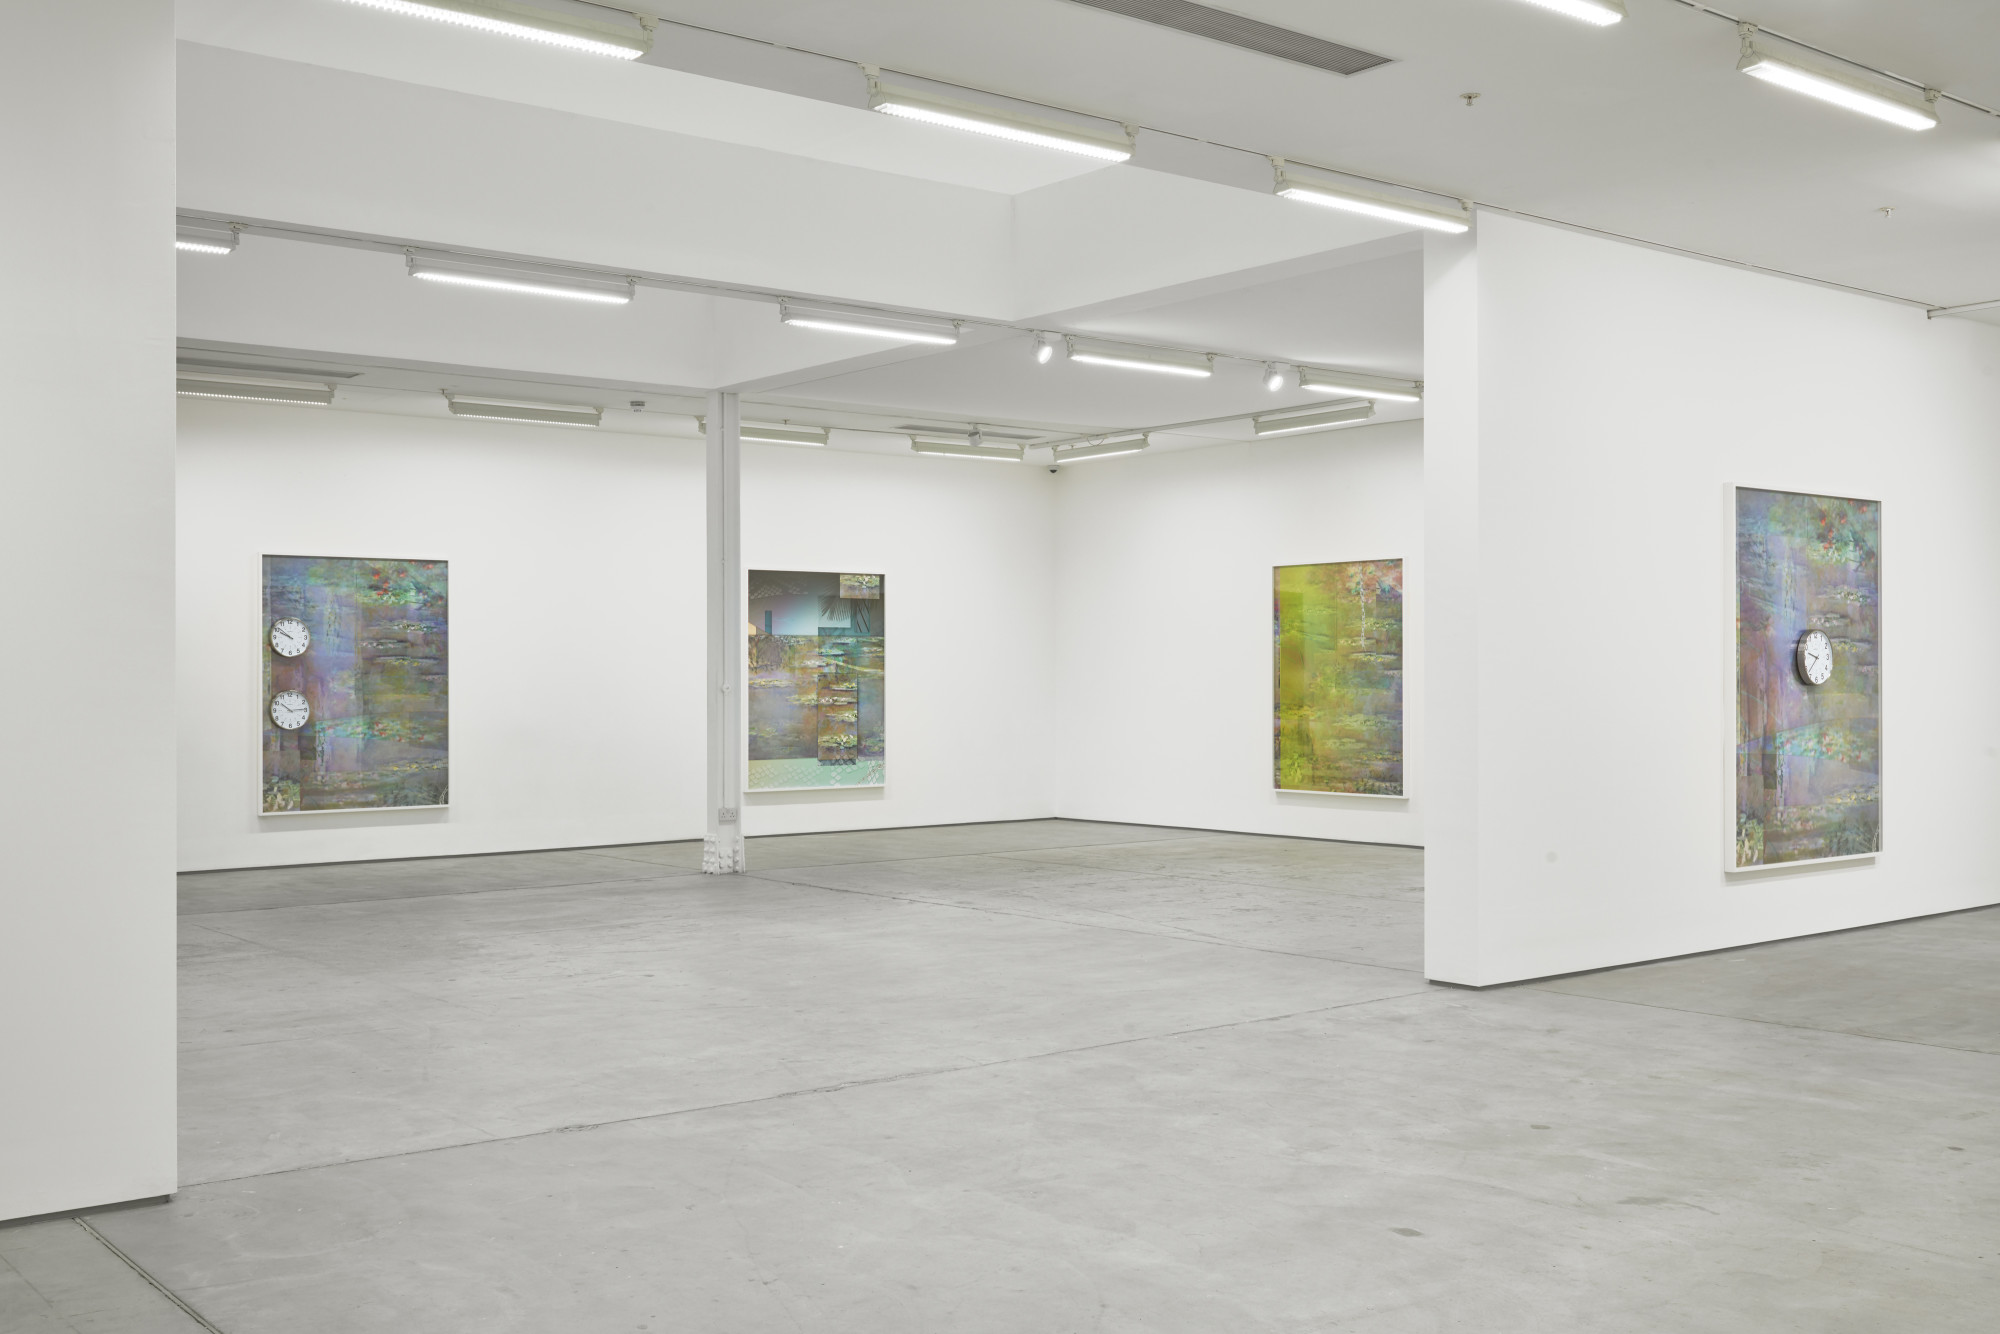 <p>Installation view, 2018</p><p>Photo:&#160;Robert Glowacki&#160;</p>